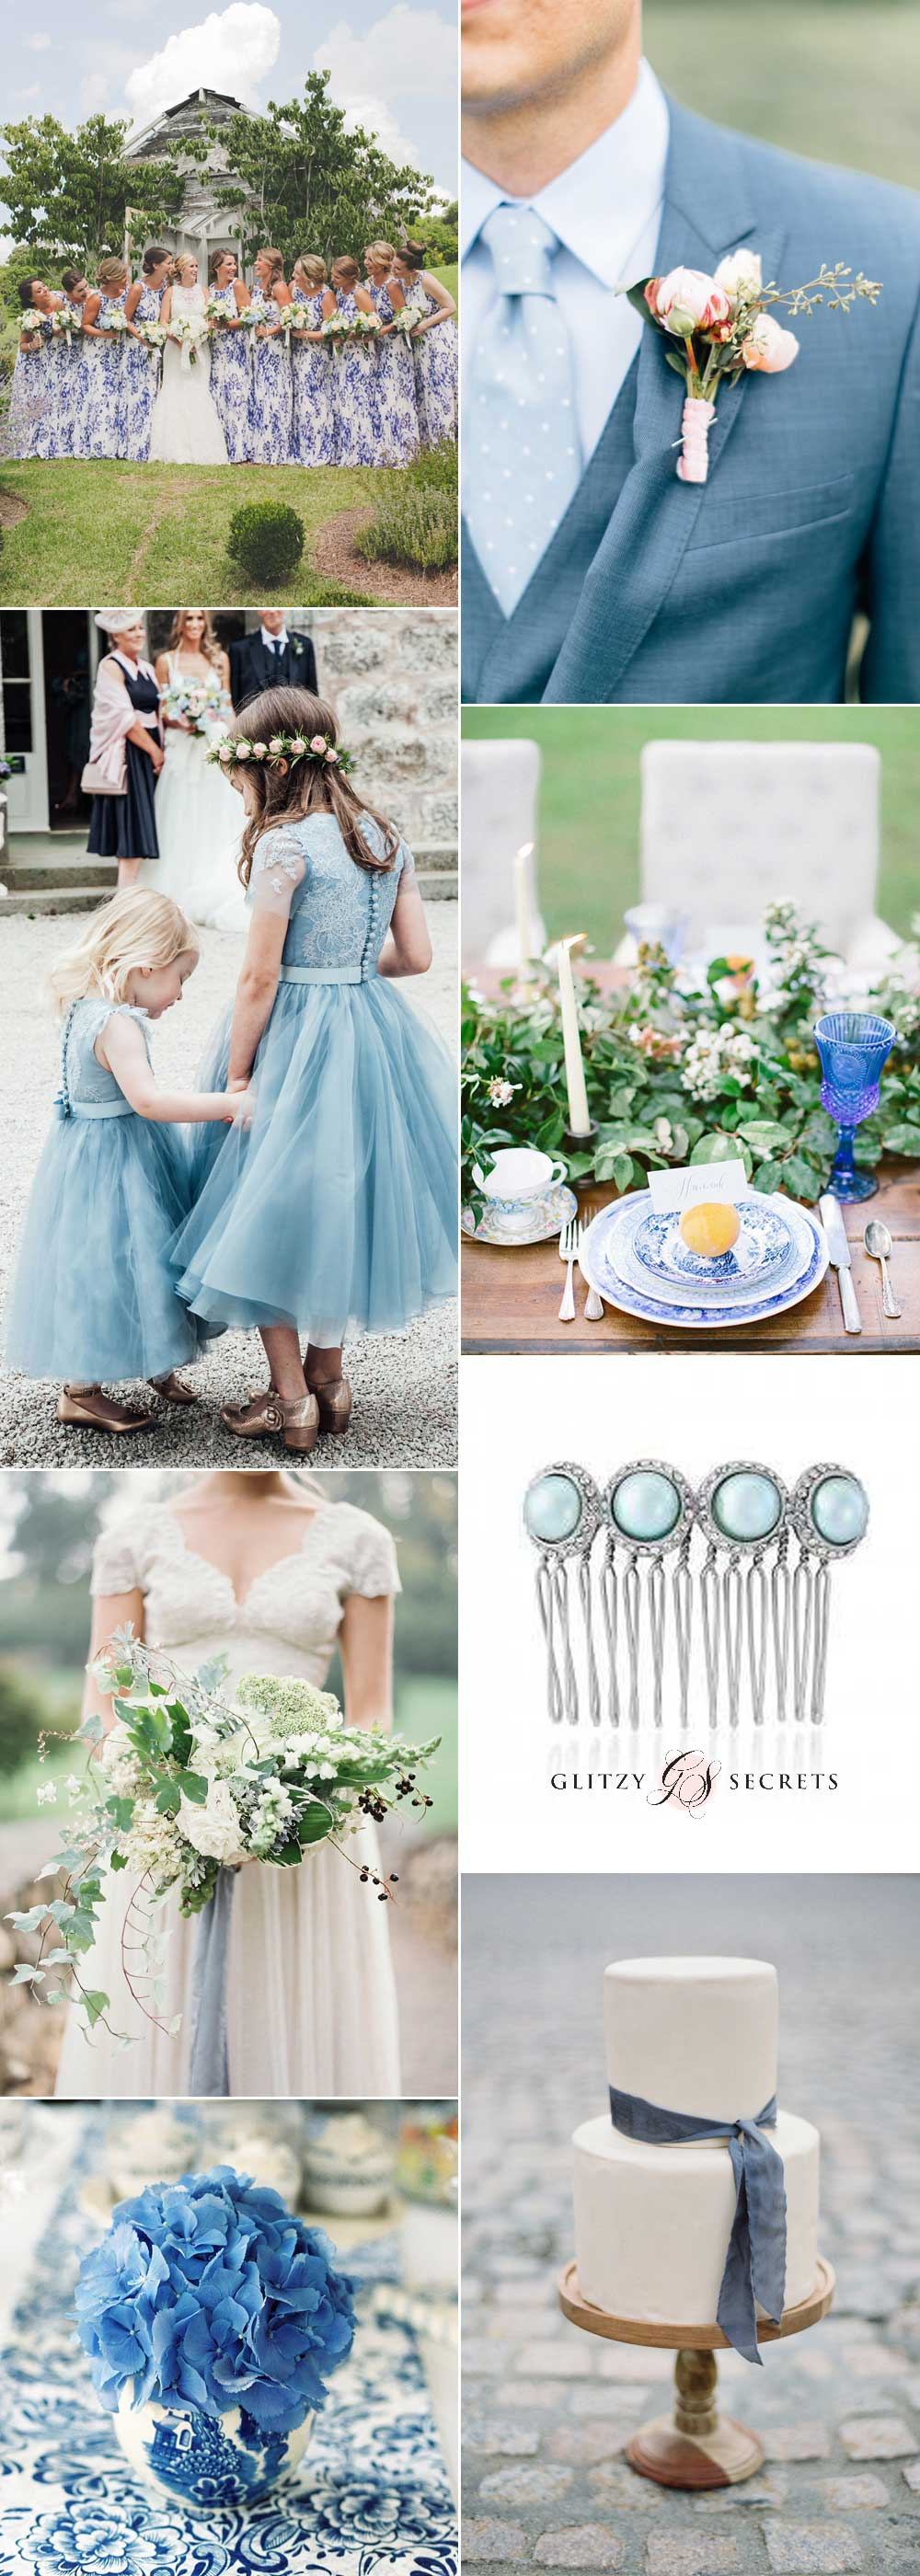 Shades of blue wedding inspiration